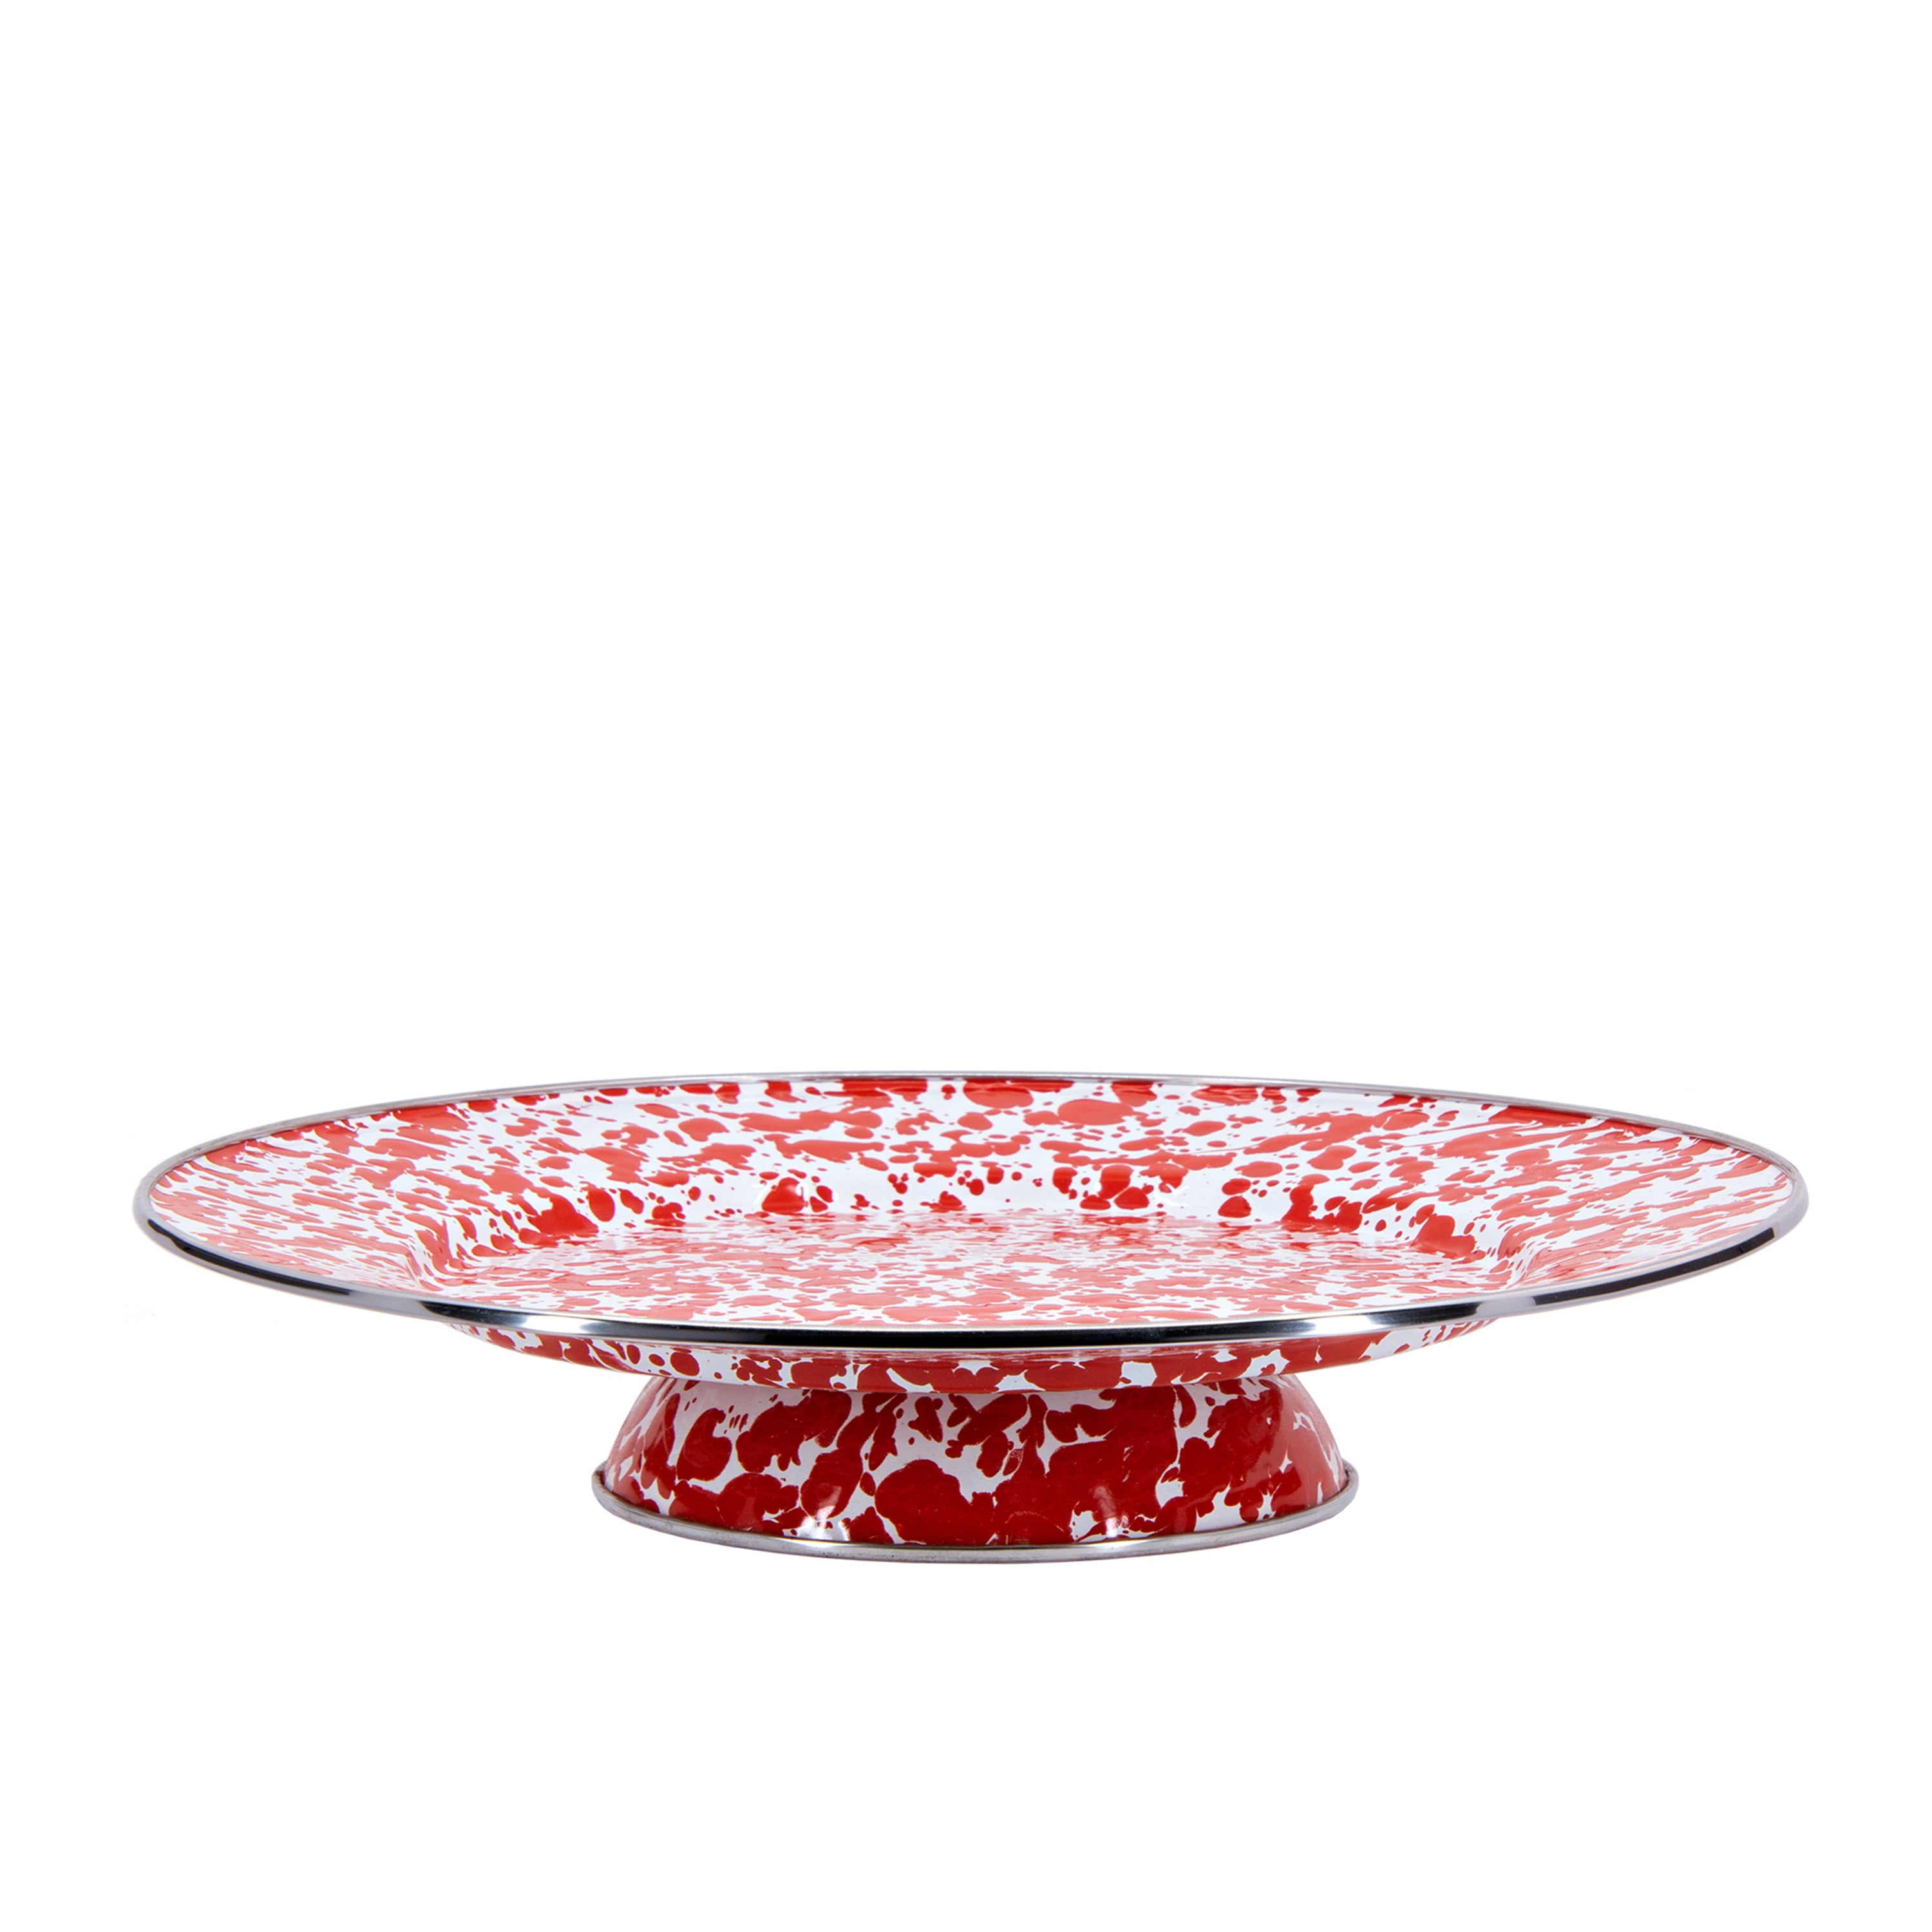 RD76 - Red Swirl Cake Plate Image 1